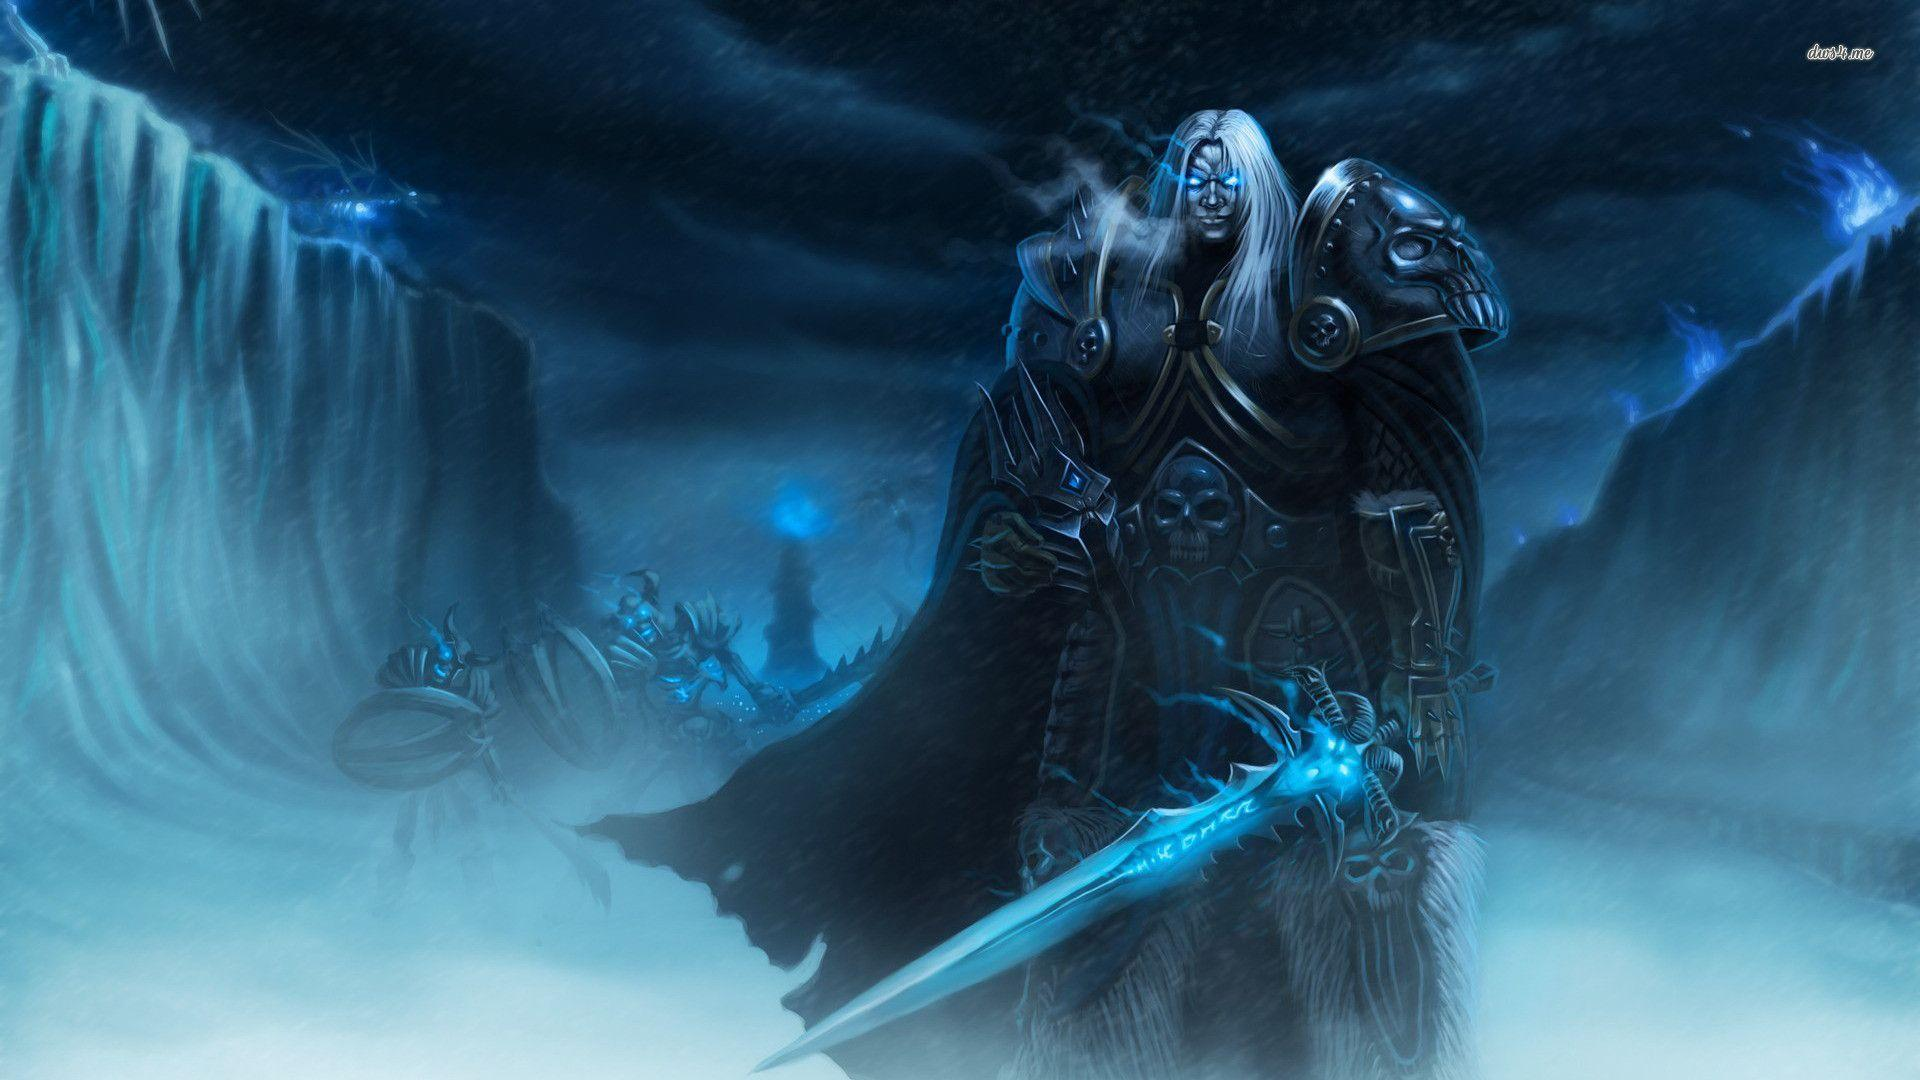 Arthas Menethil – World of Warcraft wallpapers 1920x1080 px